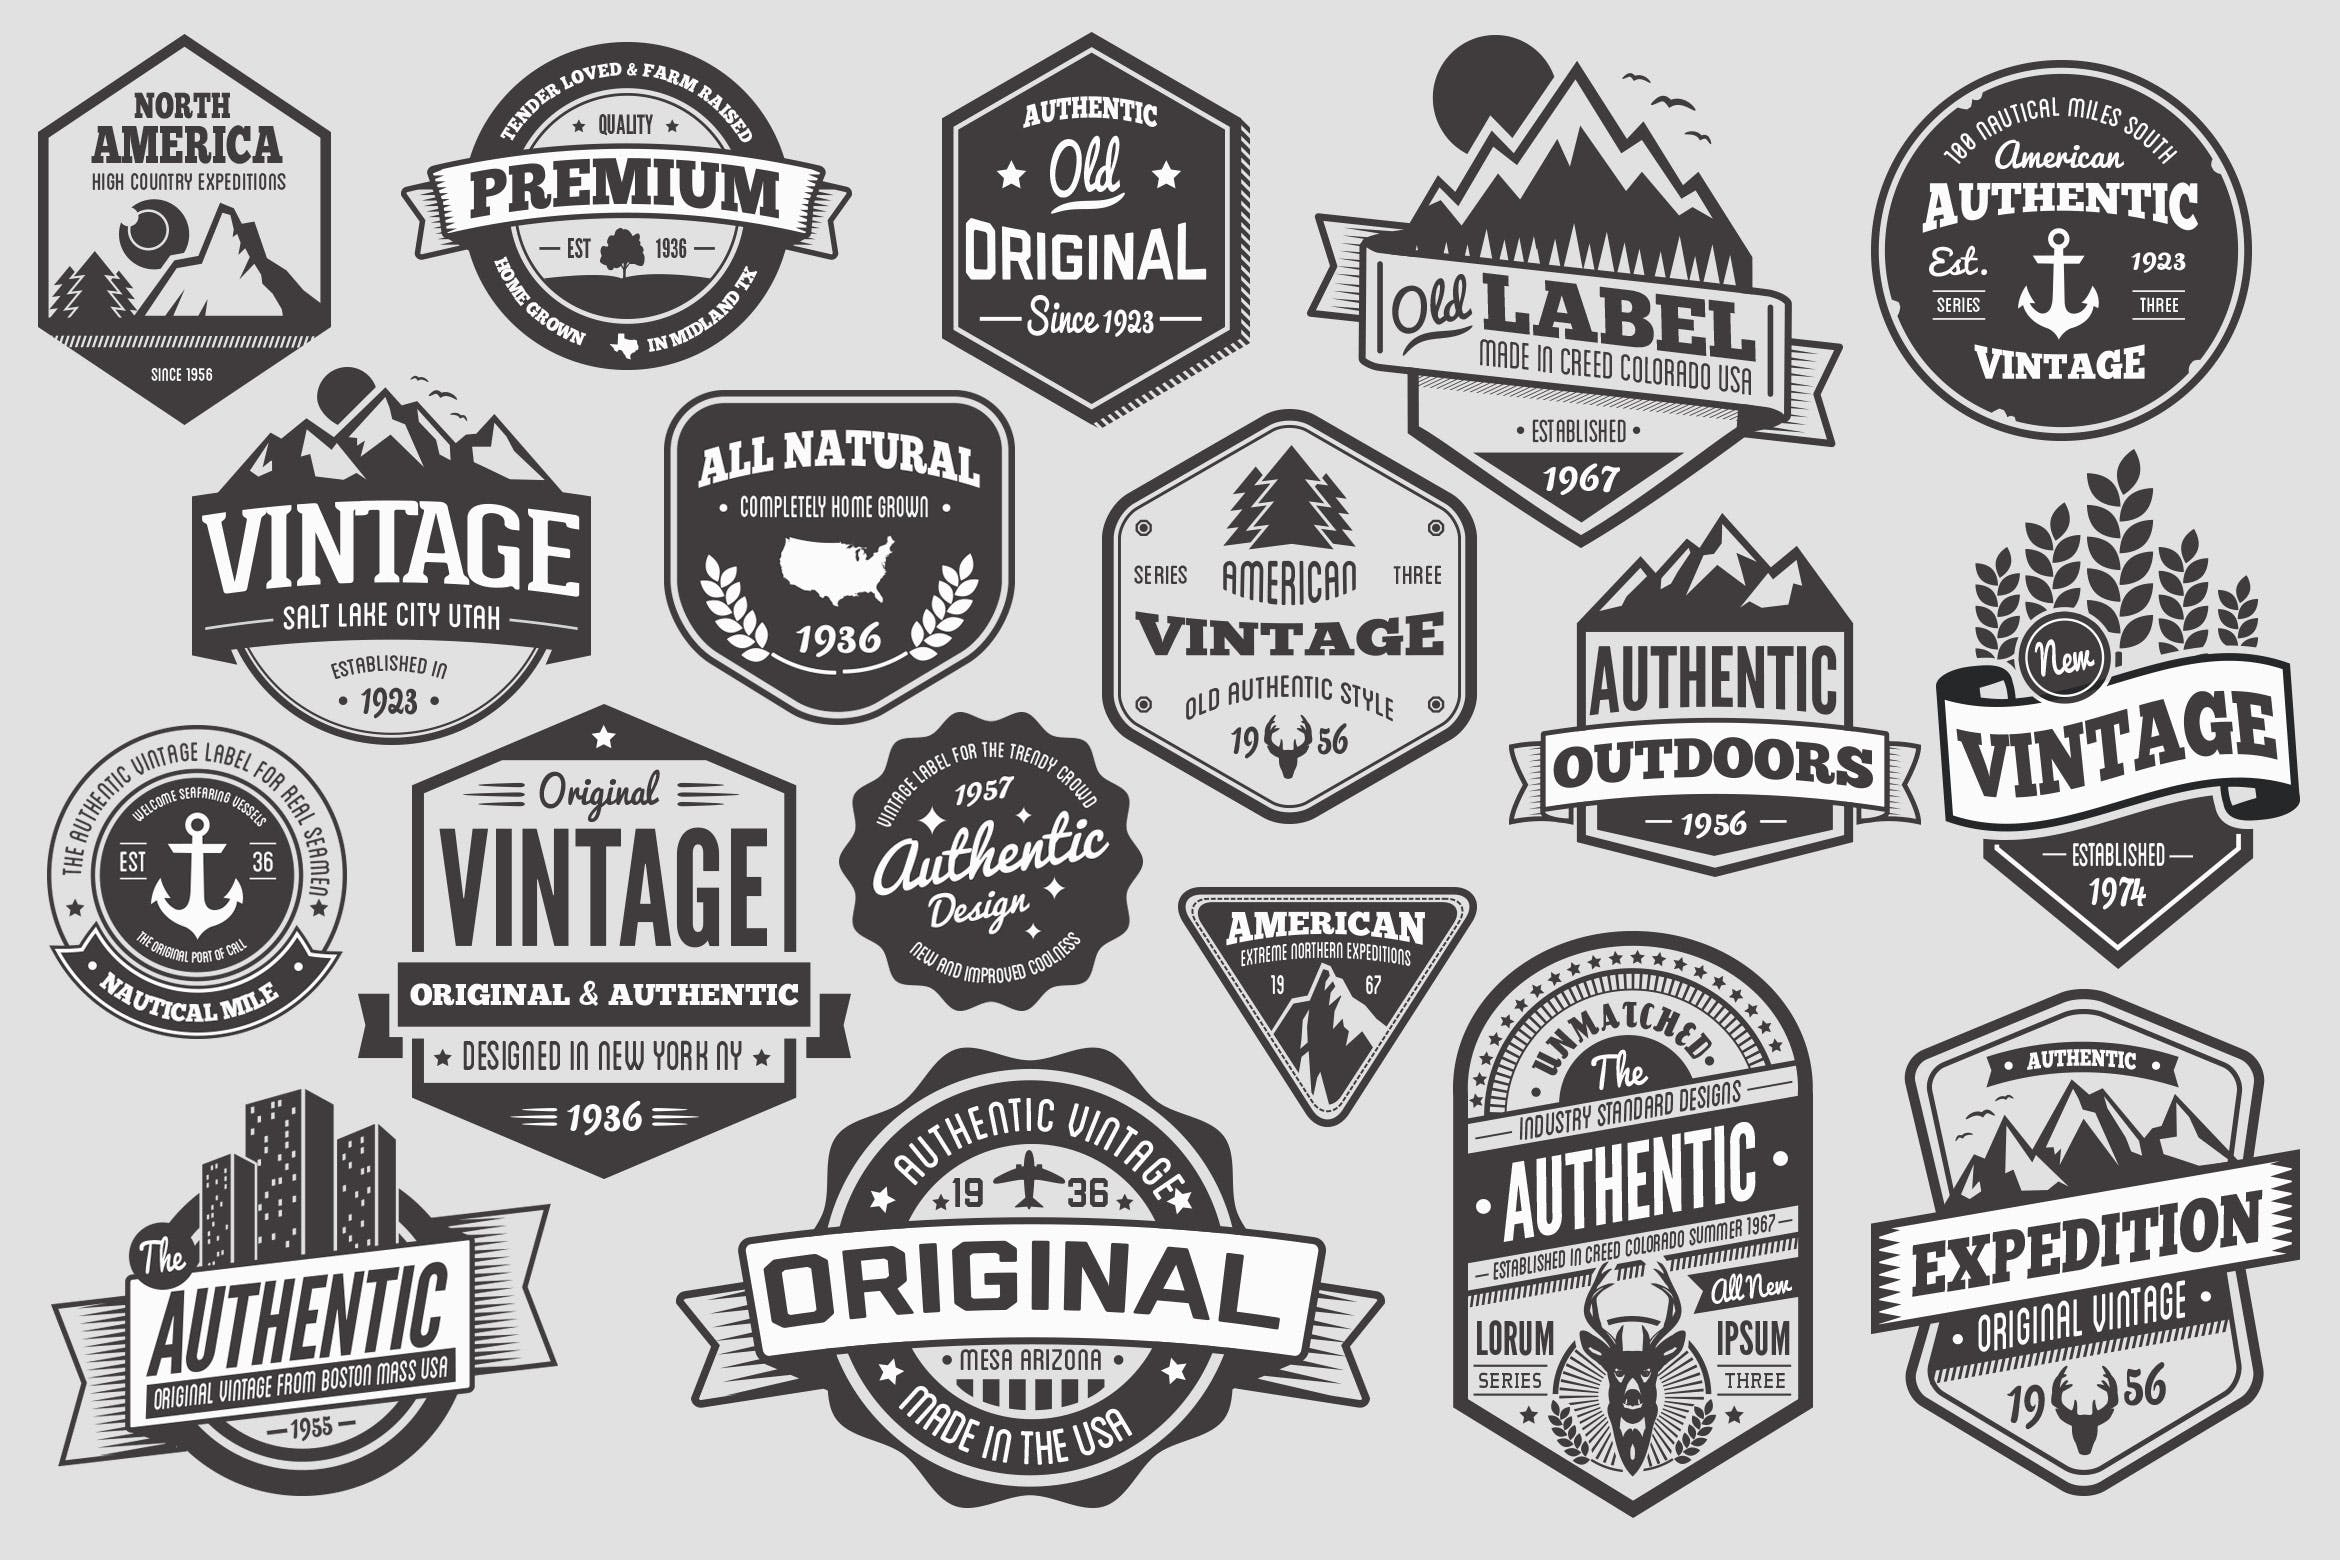 18 Vintage Badges and Logos by GraphicMonkee on Envato Elements.